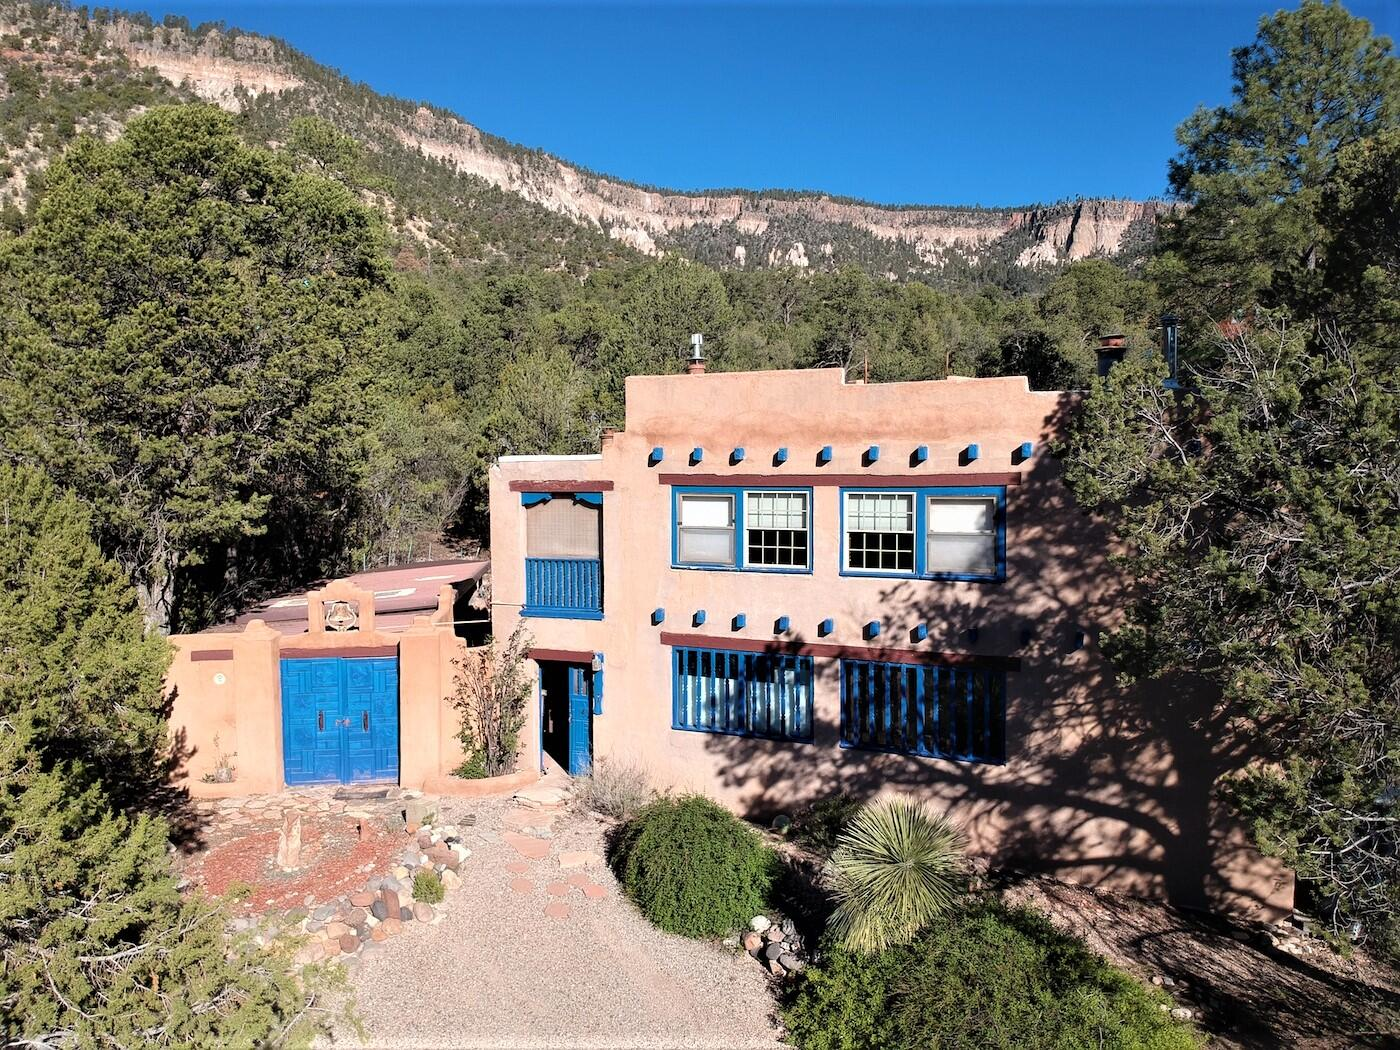 The Sweet Style of Santa Fe...in the Jemez Mountains!! Just North of the Village of Jemez Springs & just up the road from Soda Dam, this home is waiting for you to make it your dream come true! Upper & lower level, each its own contained living area, complete with kitchen. In-Law quarters? Rental (You live in one and rent the other). Two family share? VRBO? All possibilities! Beautiful artistic touches, custom tile work & amazing hand carved wood doors & trim.  So many amazing spaces with so many options! Sweet partially covered deck to take in those views. Shaded Portal becomes summer living space! Separate 370 sq ft studio. Amazing meditation space! Even a star gazing platform!! Most Furnishings can stay. All on almost an acre of Heavenly Jemez! This is one of those you just have to see!